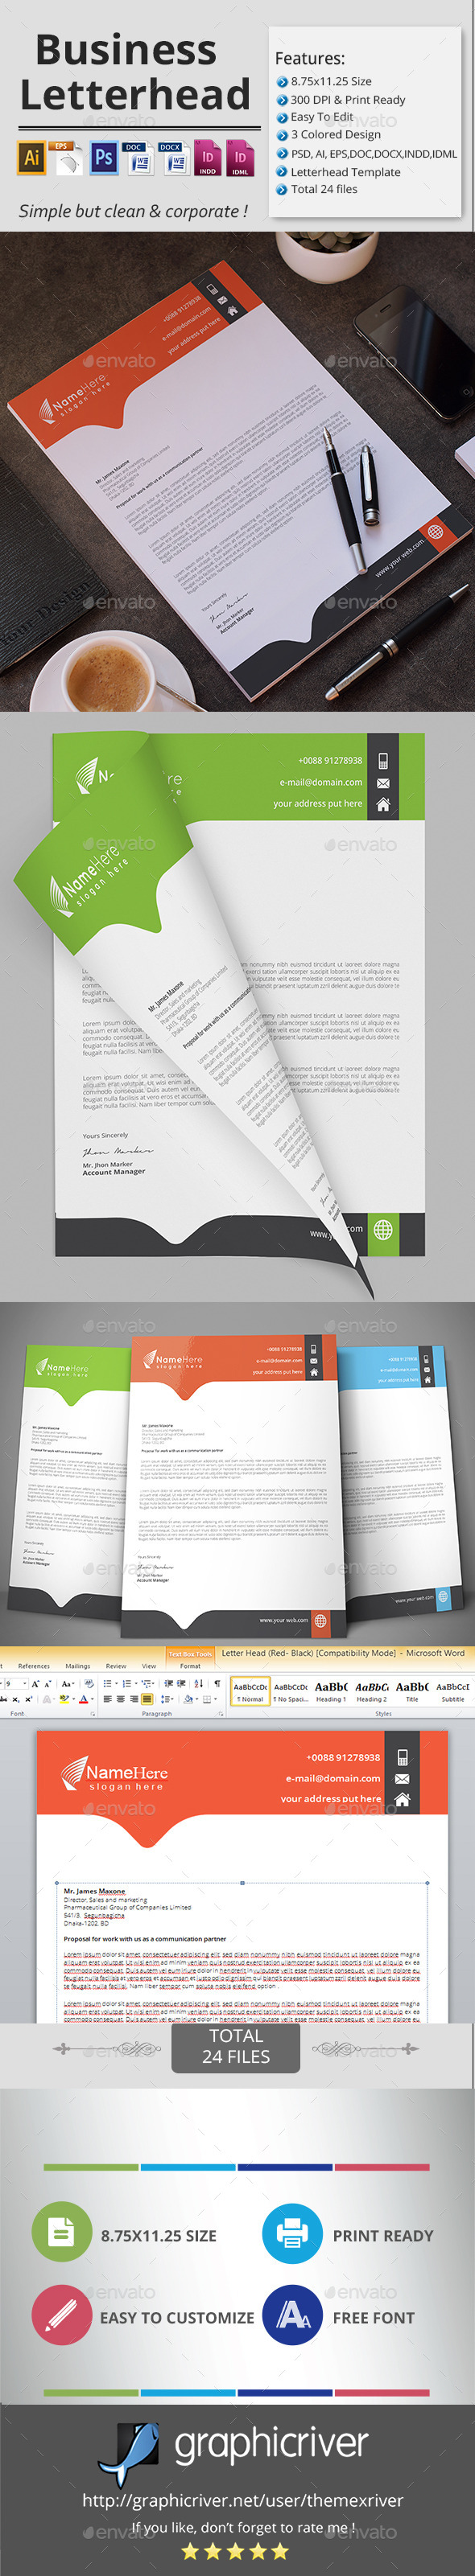 Business Letterhead. - Stationery Print Templates